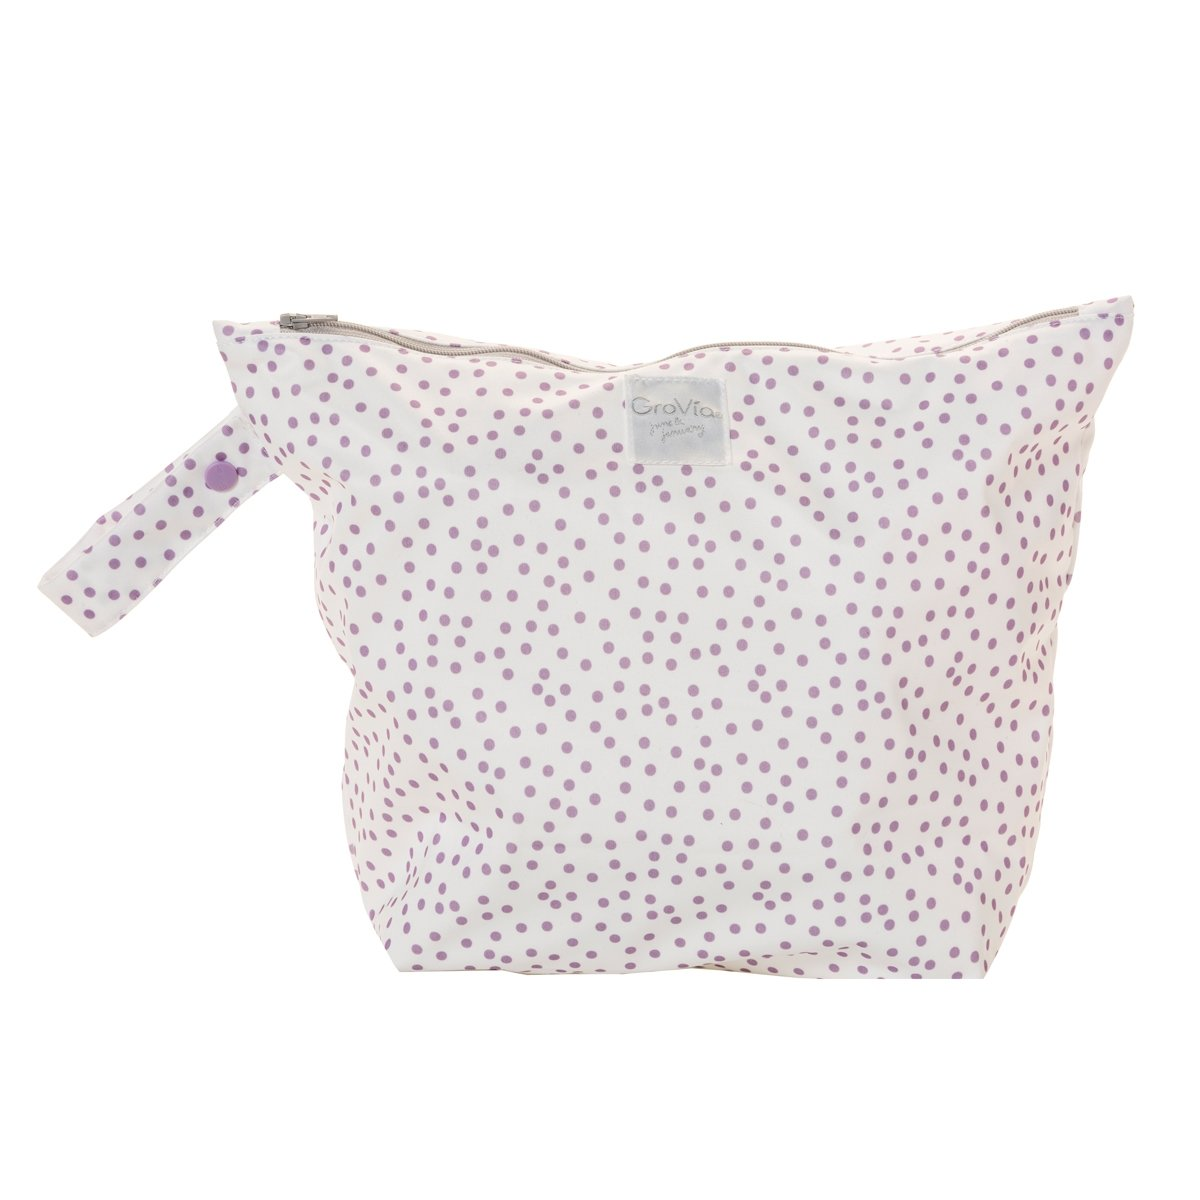 GroVia zipped wet bag -  Violet Dot